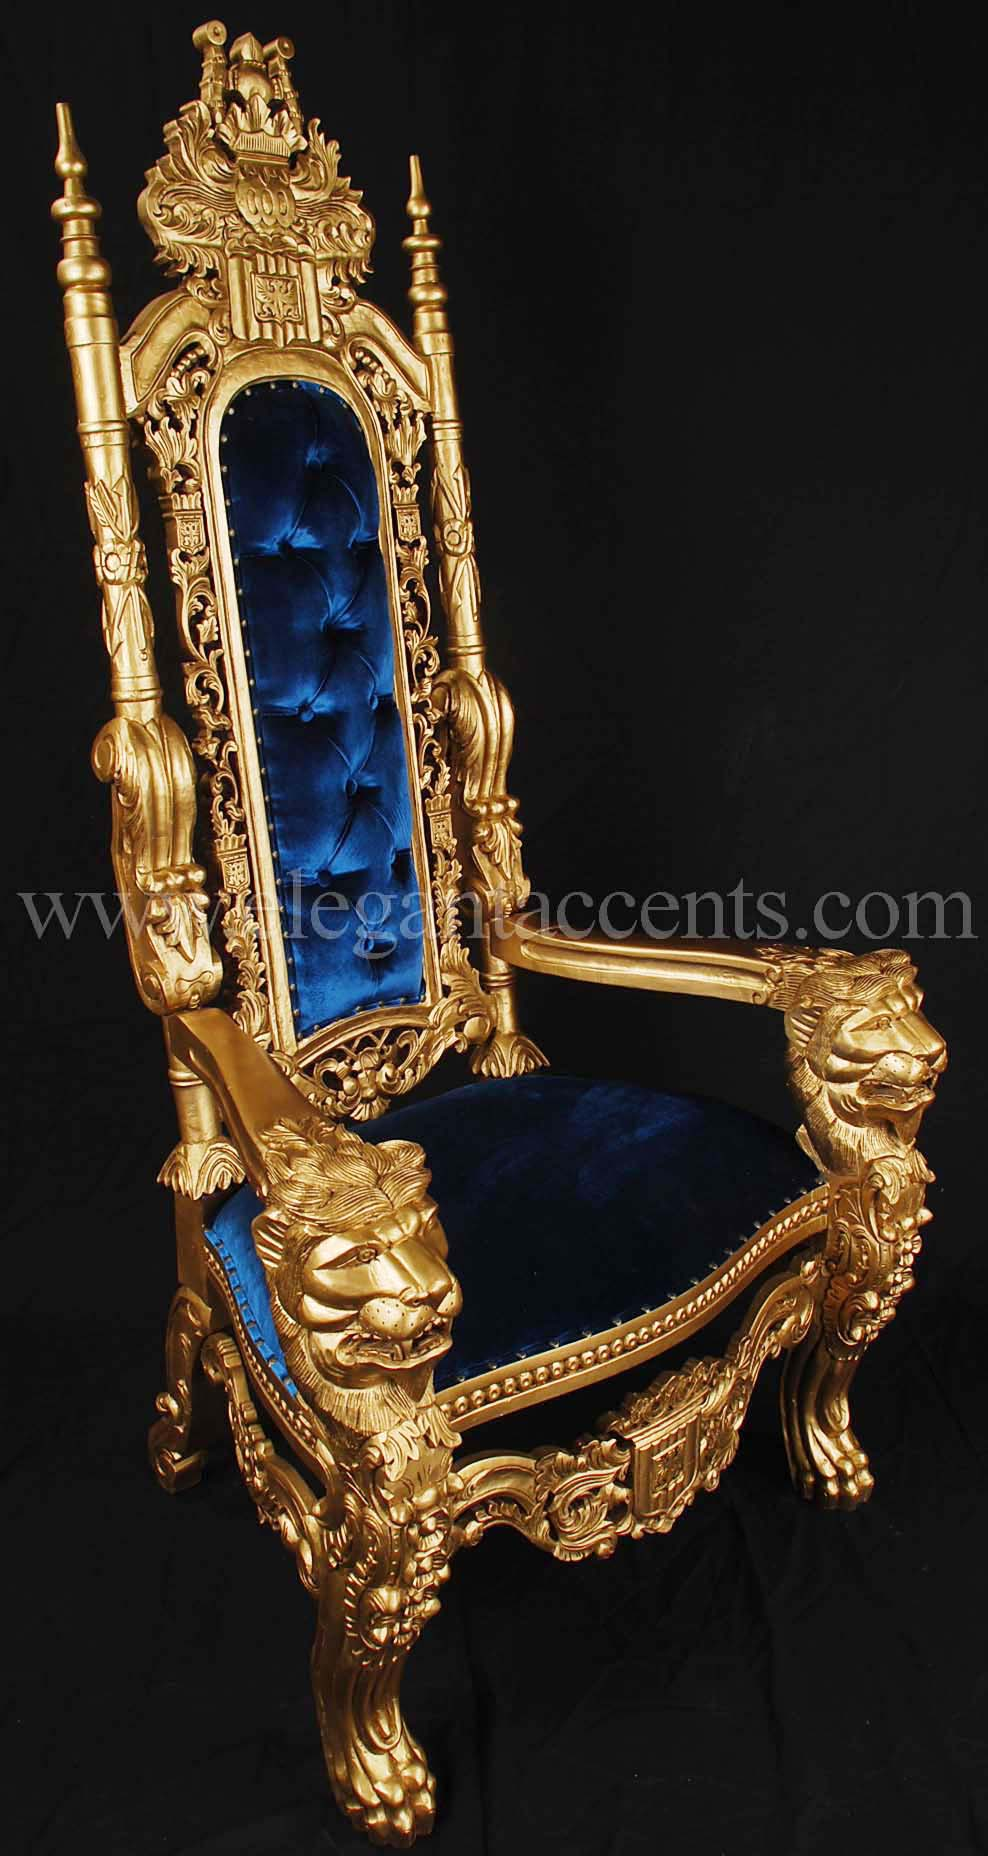 King lion throne chair gold amp blue